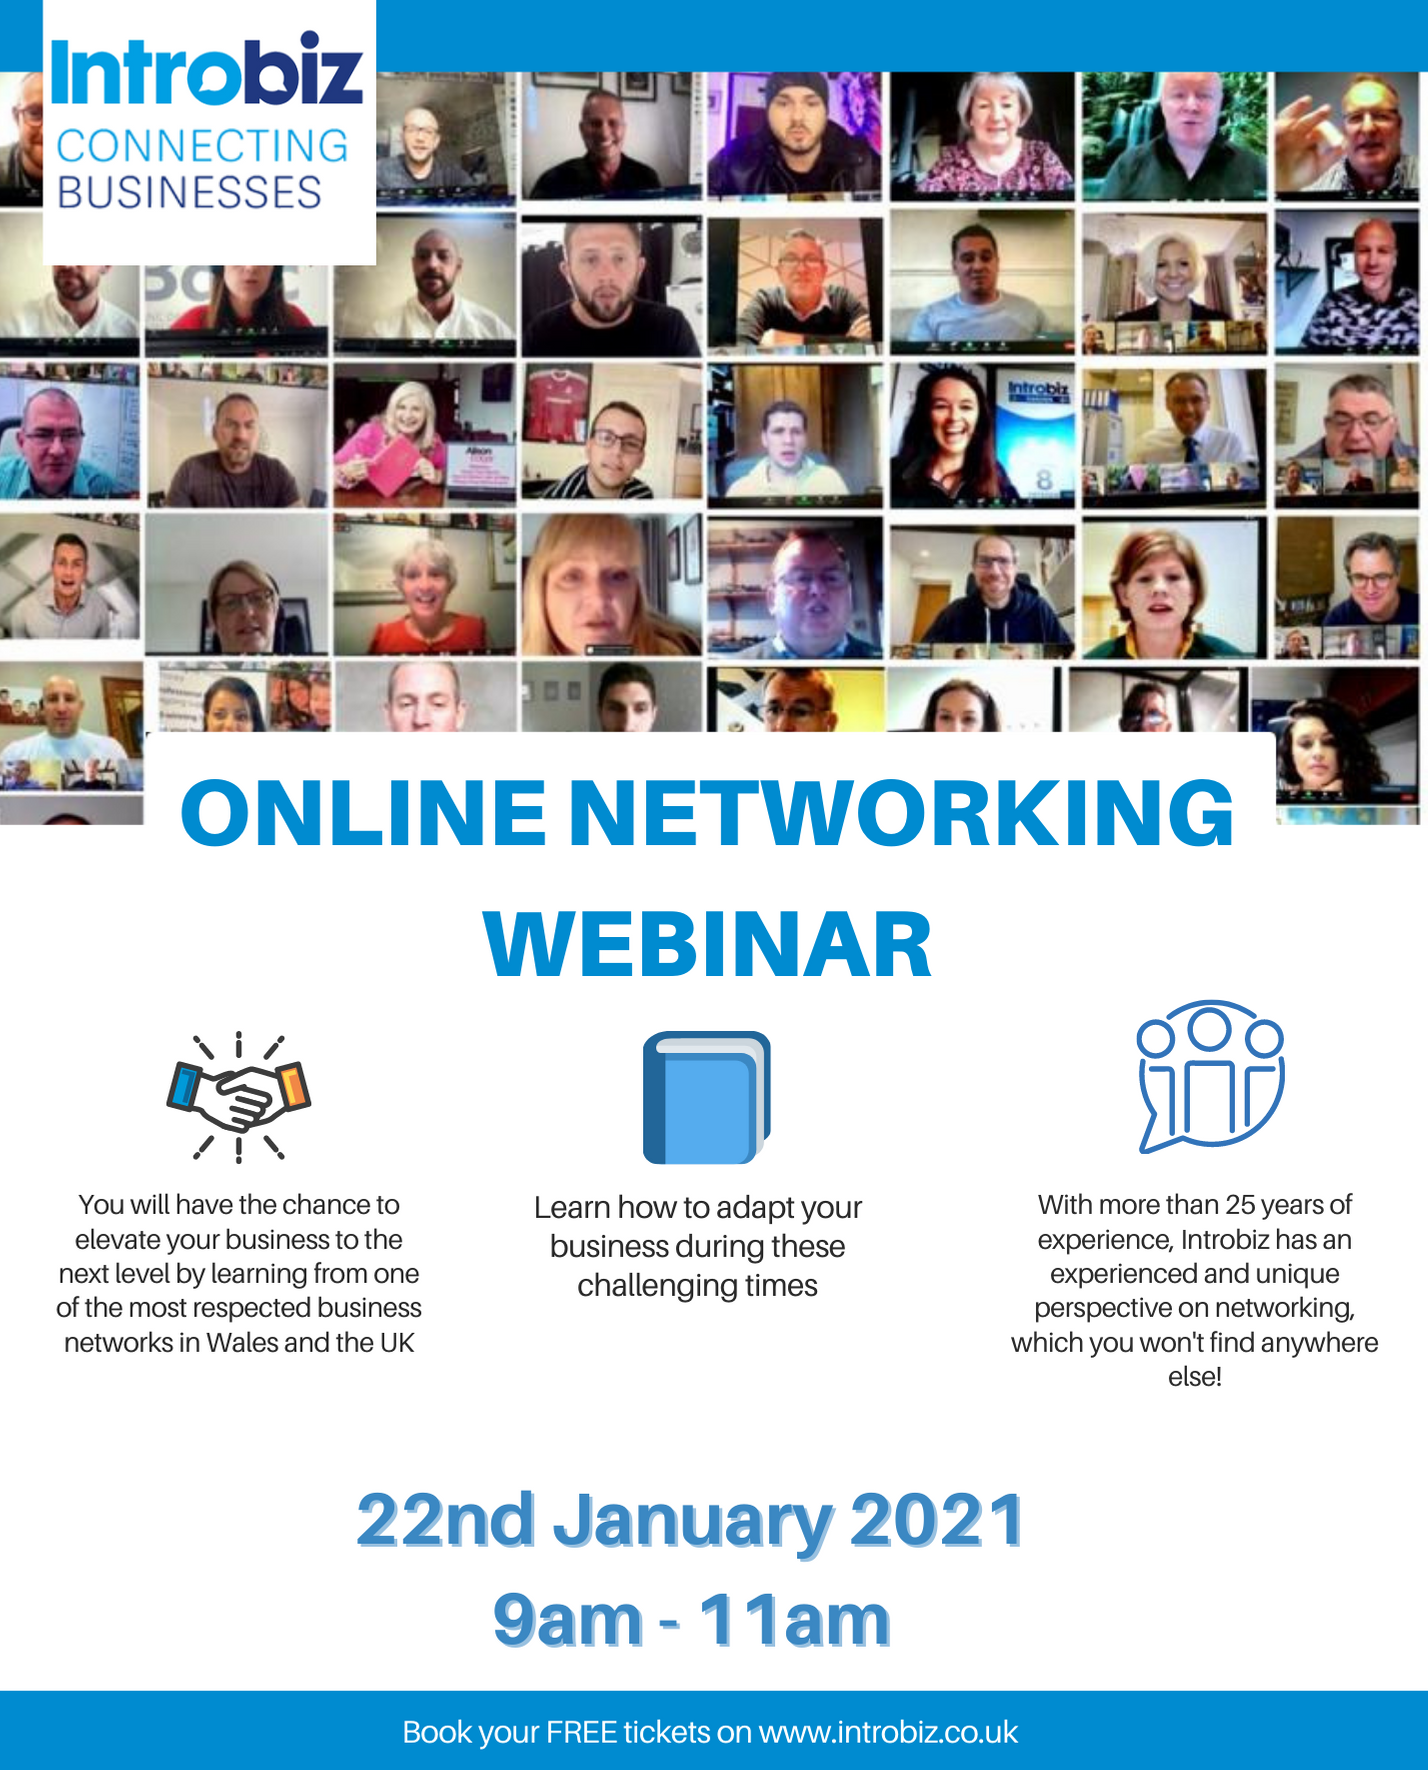 UK Business Online Networking Webinar with Introbiz